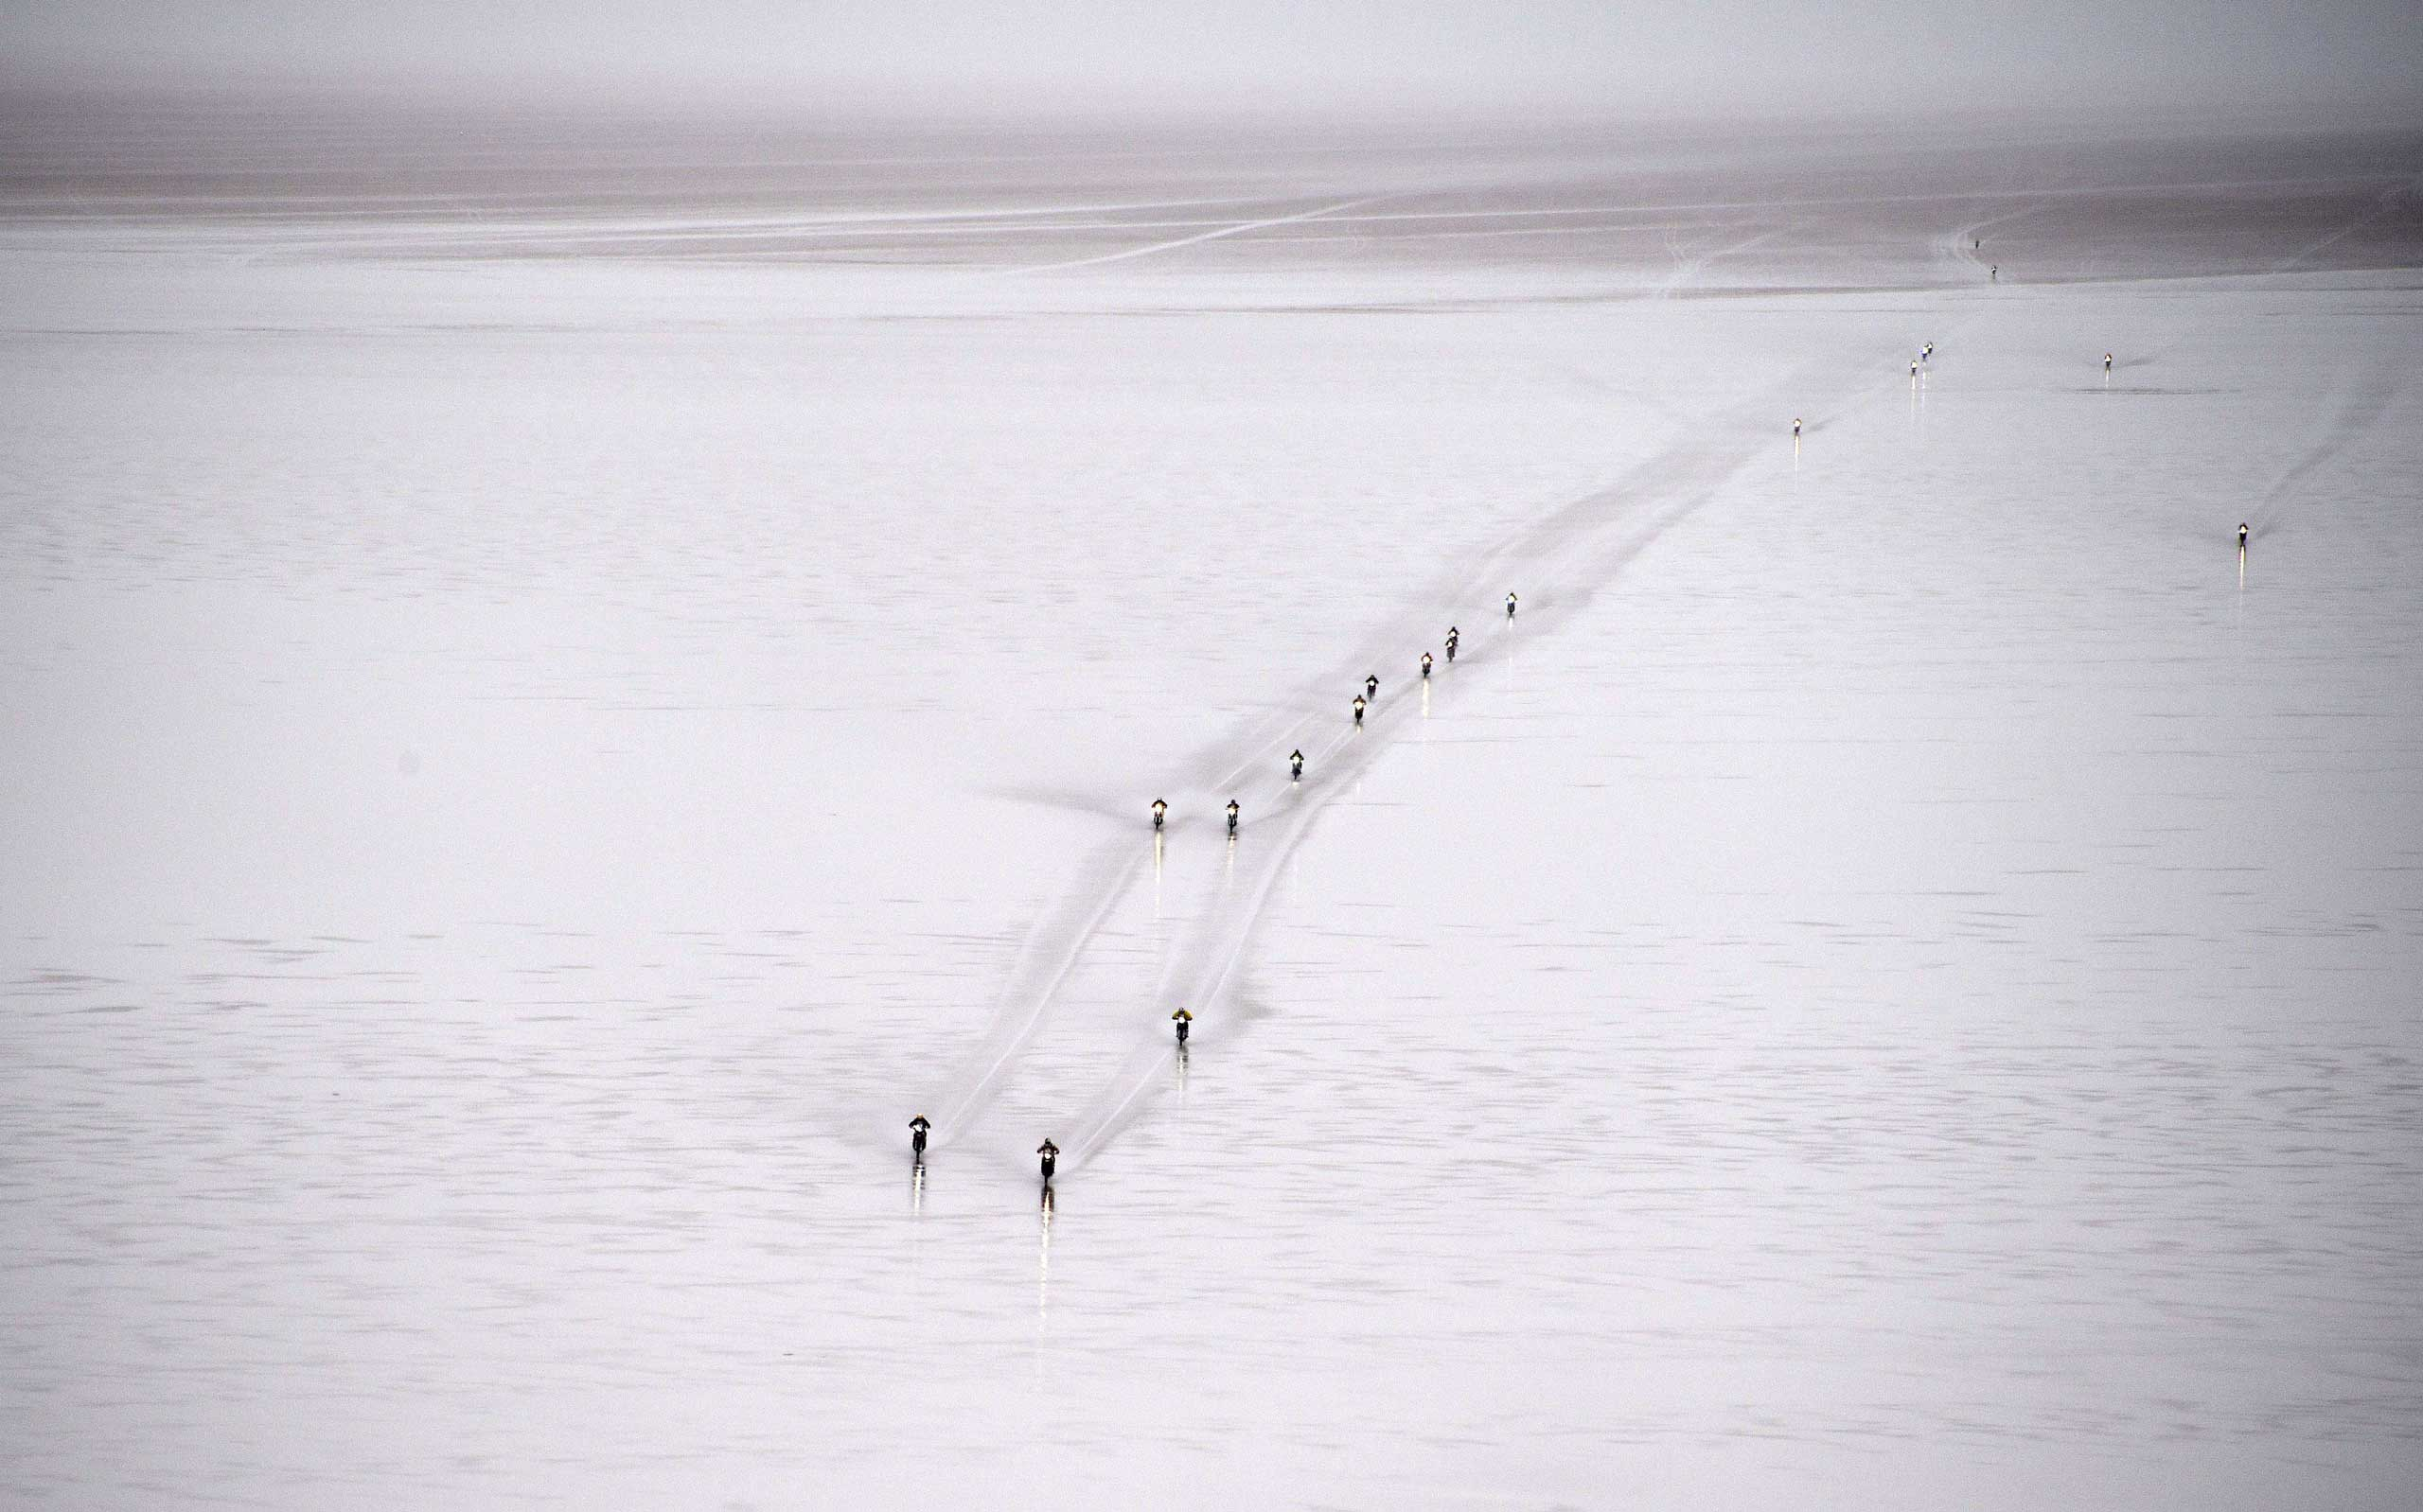 Jan. 12, 2015. Riders compete during 2015 Dakar Rally stage 8 between Uyuni, Bolivia and Iquique, Chile. The Uyuni salt flat is the largest in the world, located in Bolivia near the crest of the Andes, 12,000 ft. above sea level.